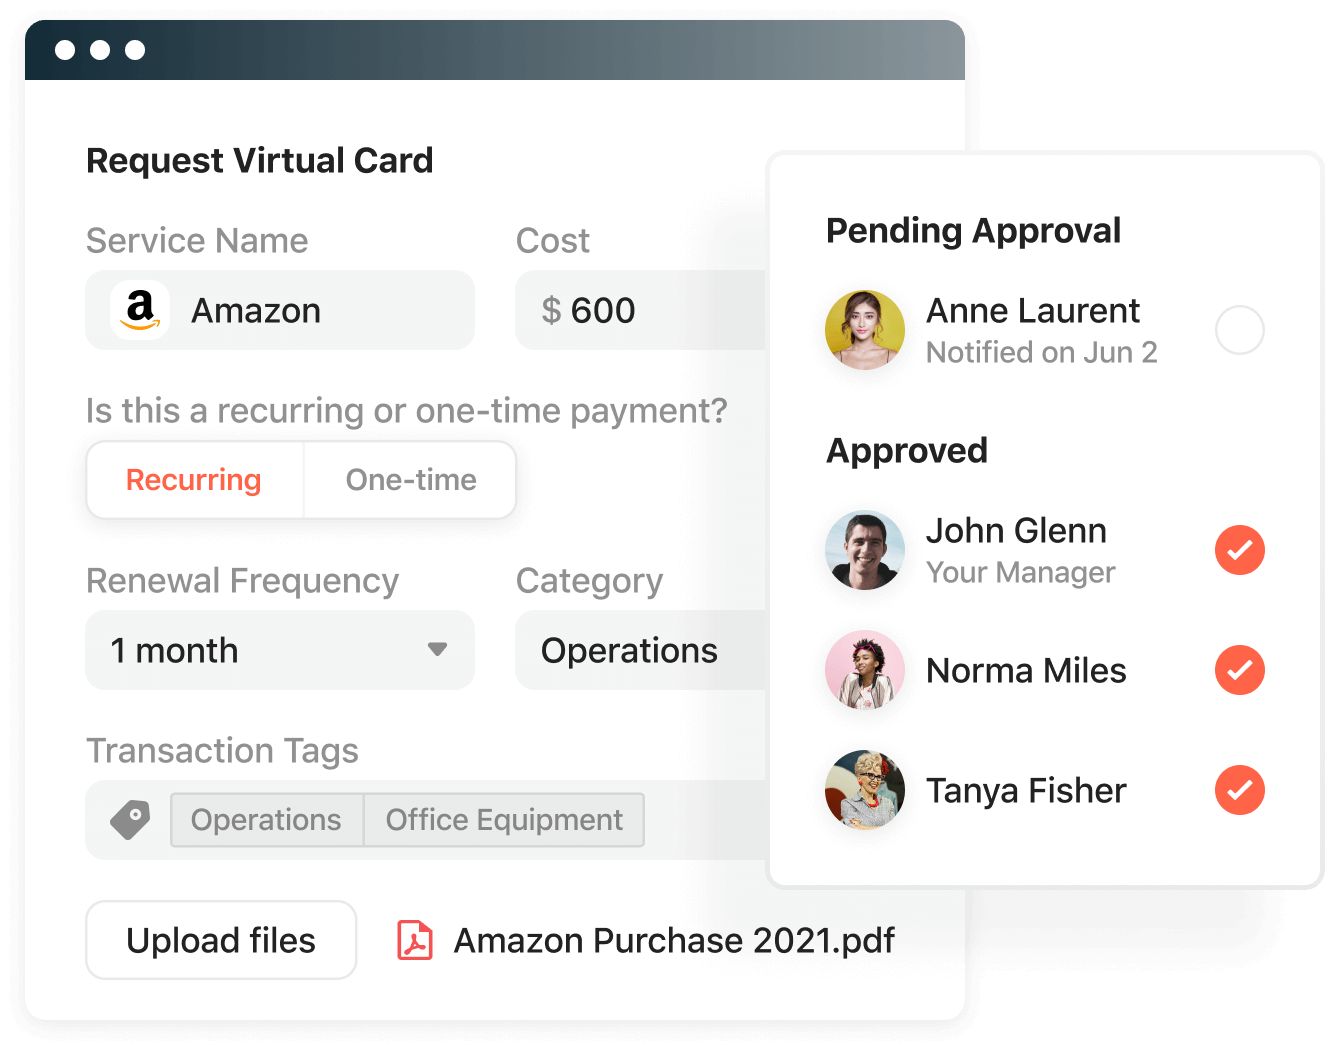 Airbase virtual cards come with approval workflows.